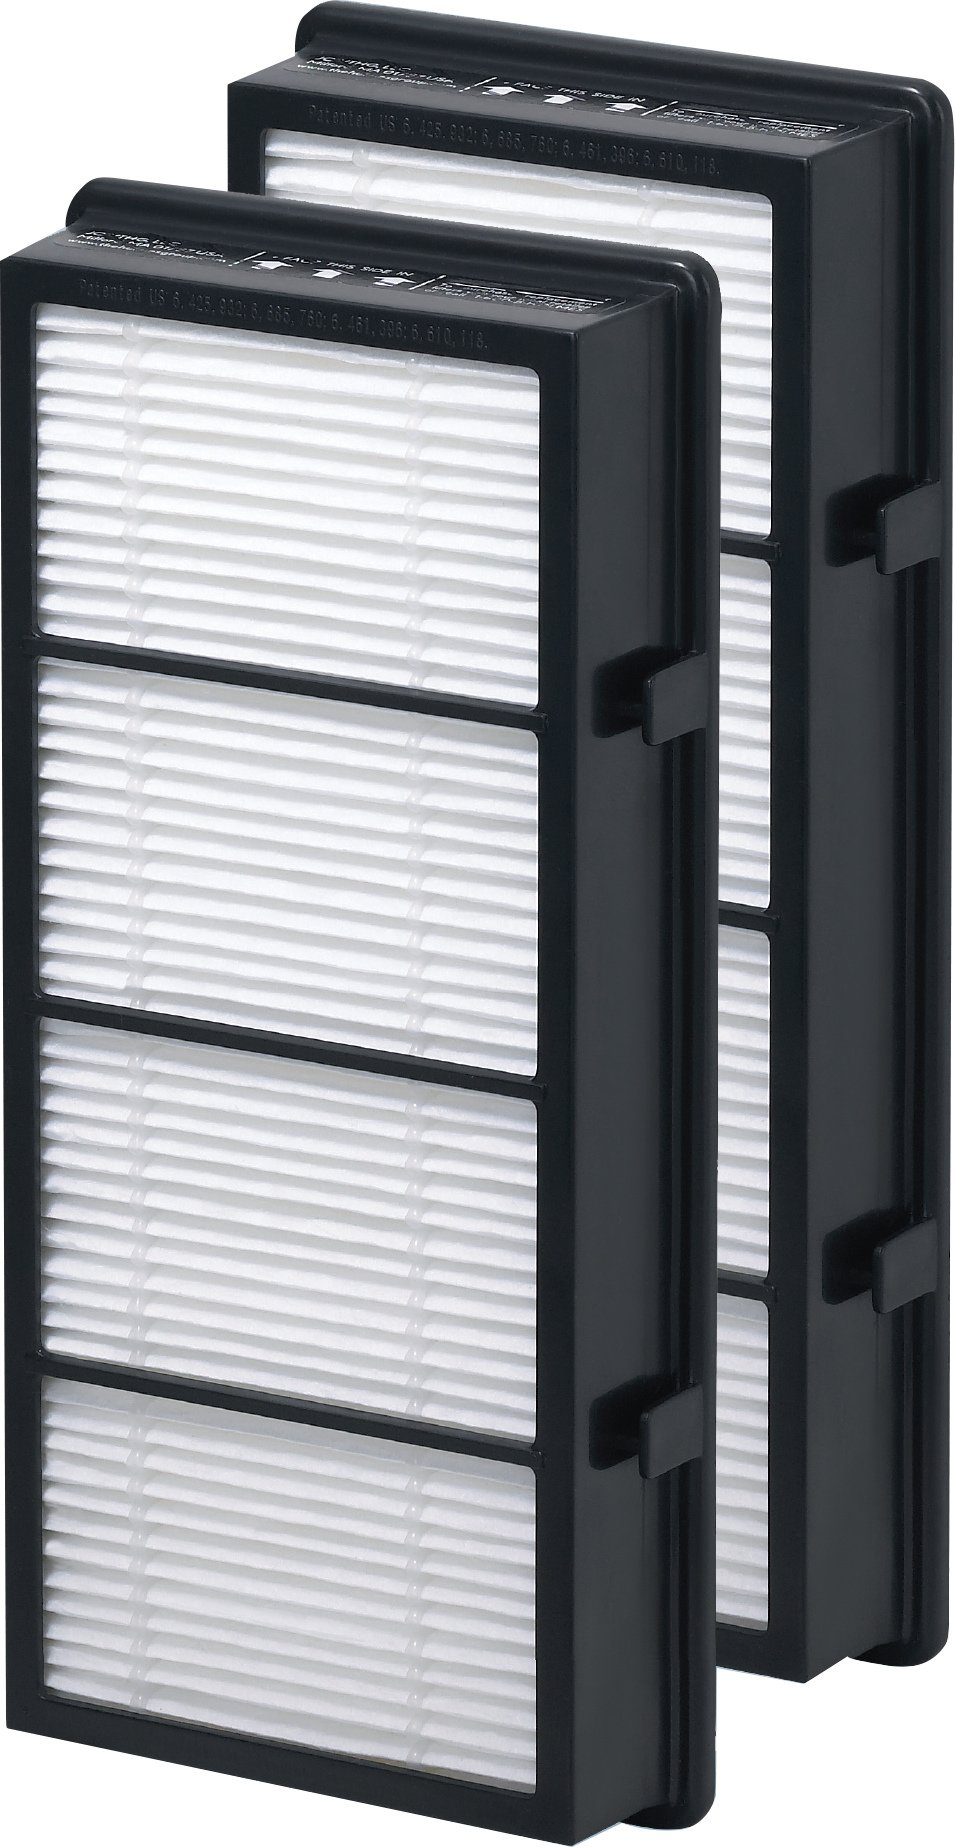 Holmes True HEPA Filter HAPF600D-U2, Filter B, 2 Pack